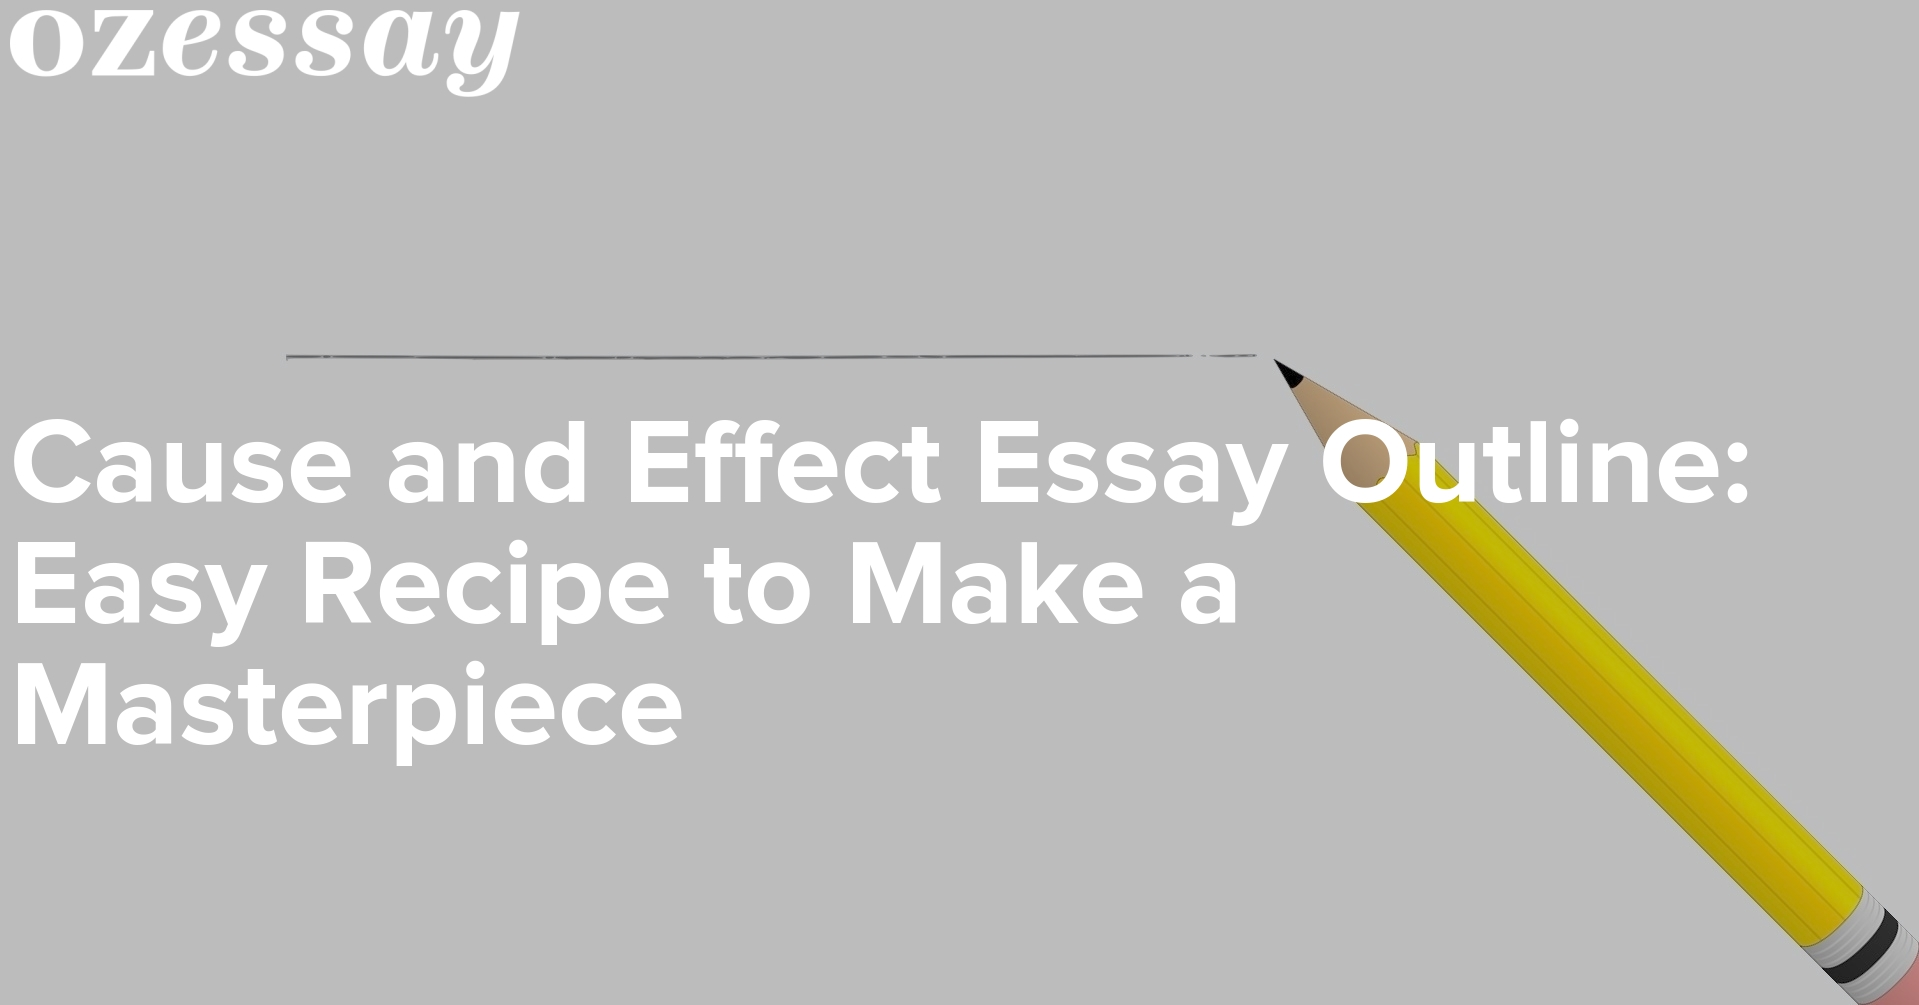 016 Essay Example Maker Cause And Effect Outline Ozessayv1495699202 Breathtaking Cheap Philippines Full